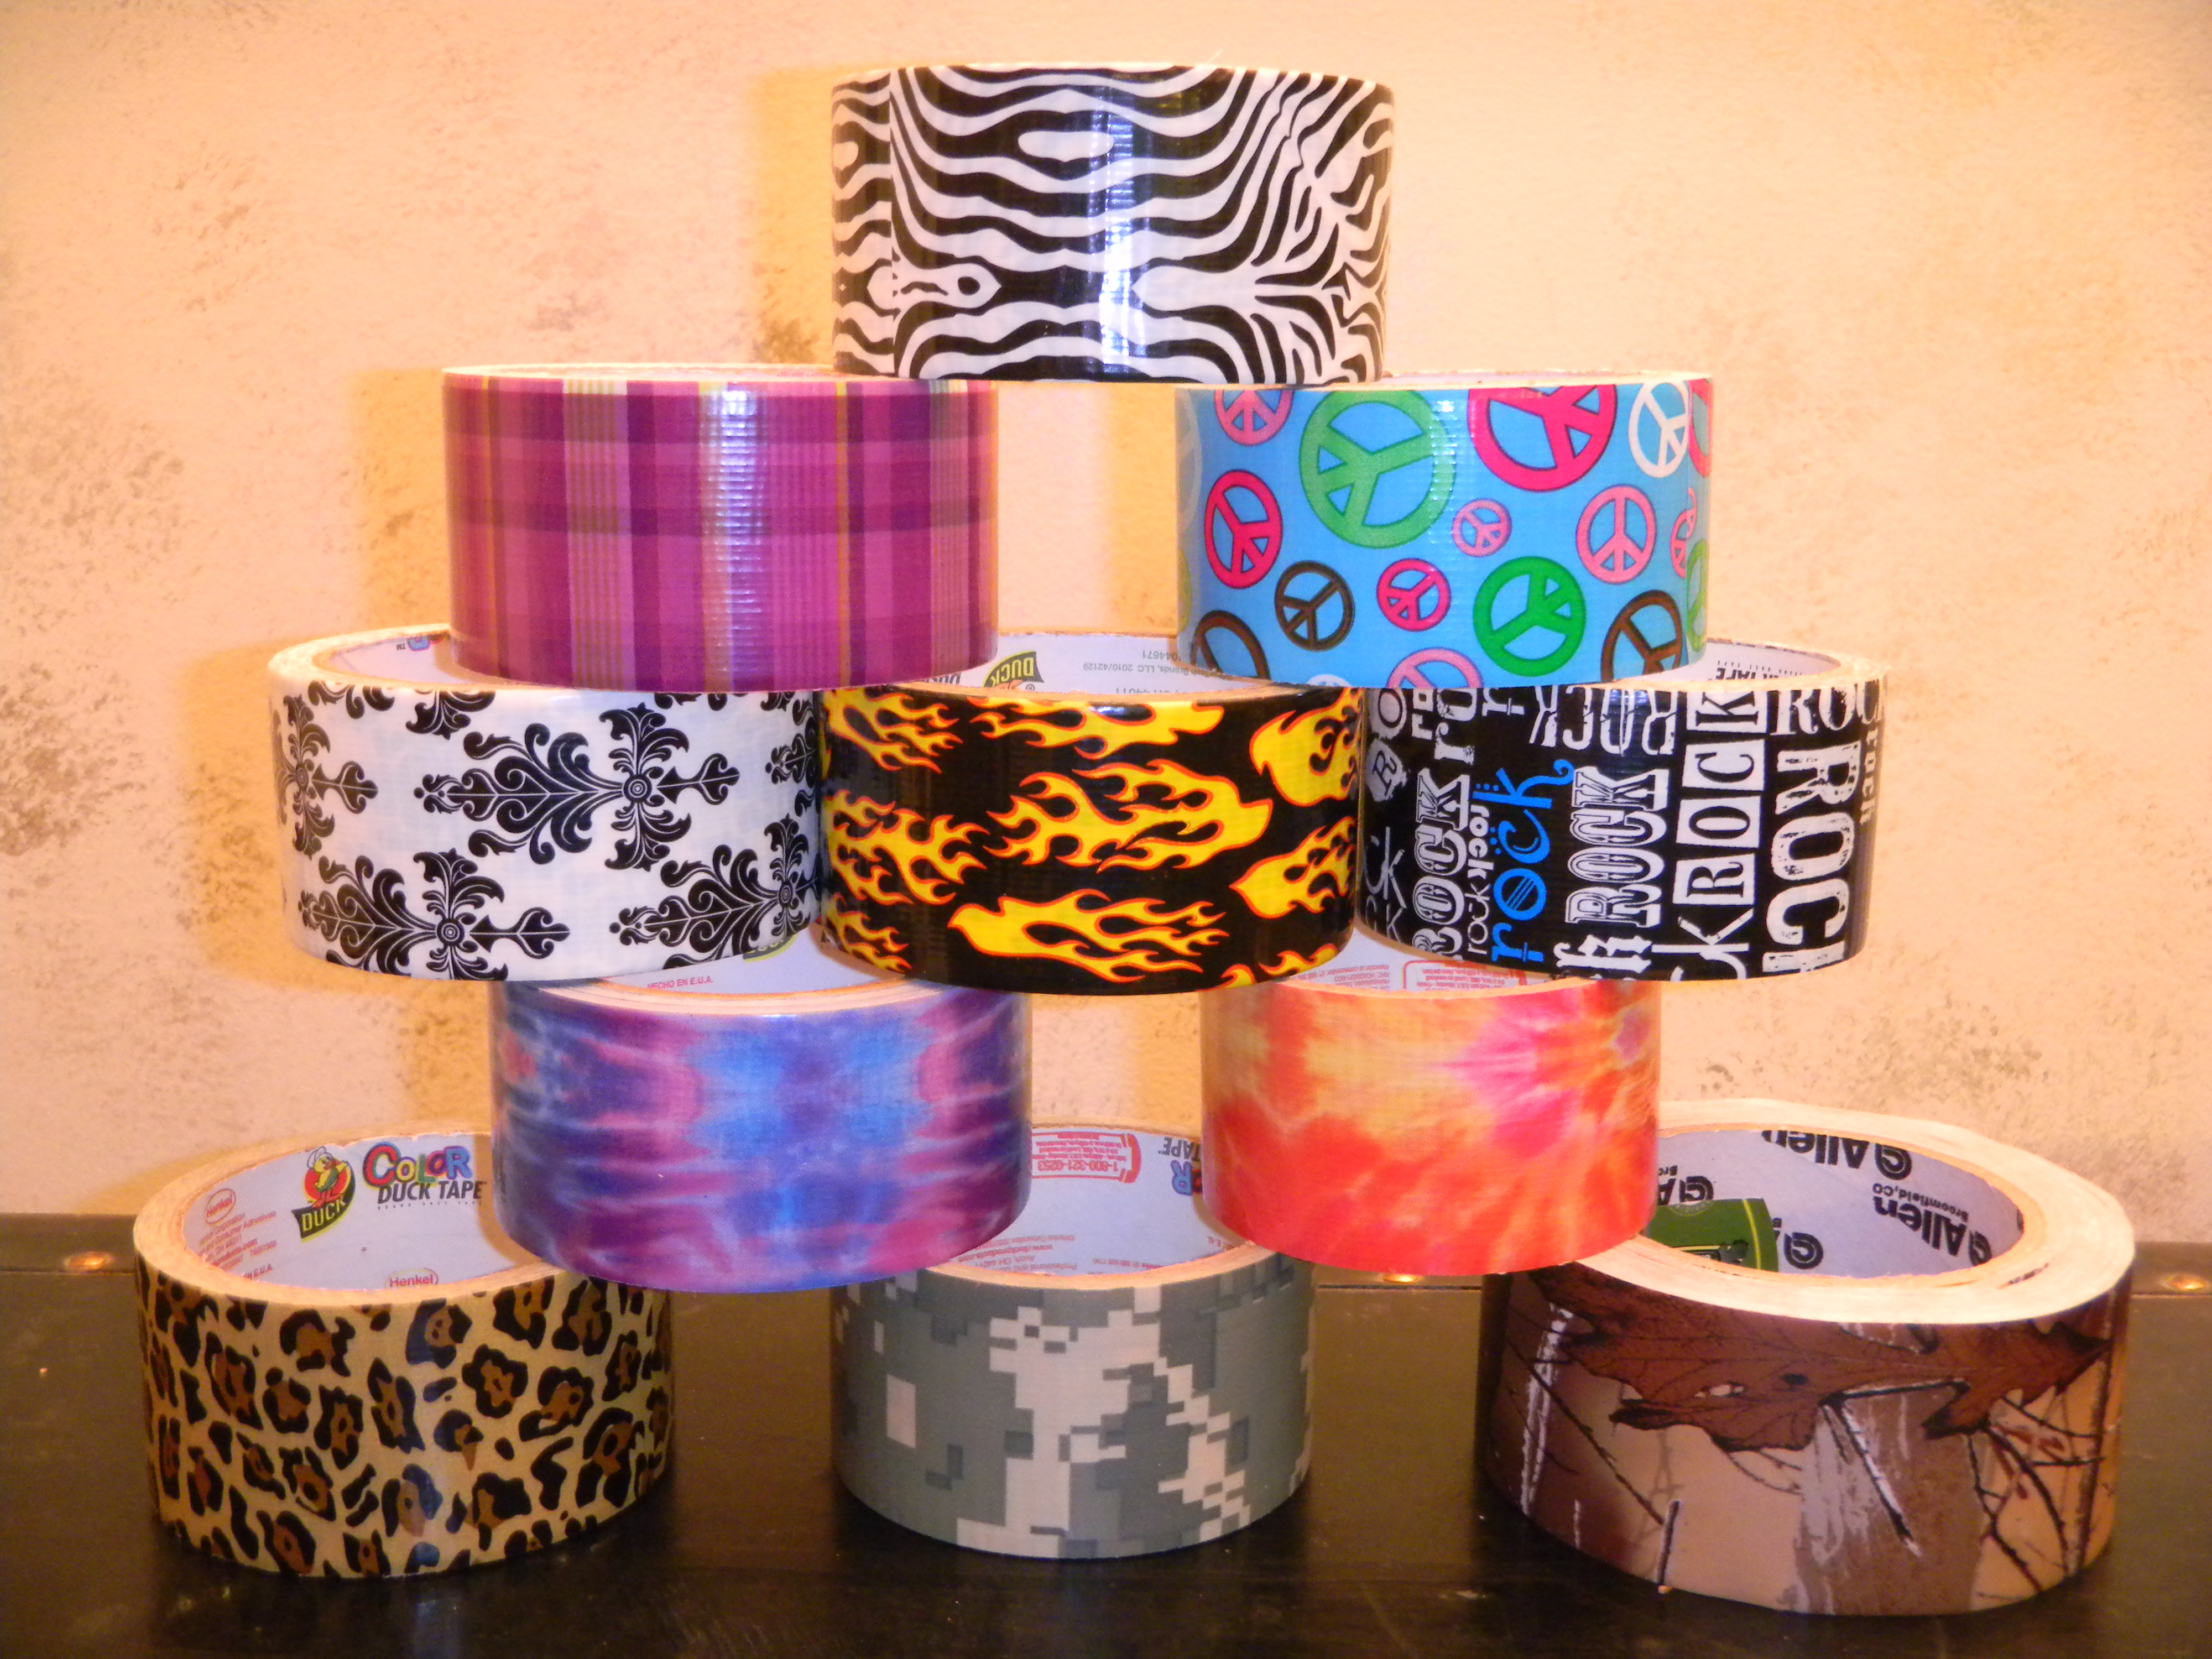 Limited Edition Printed Duct Tape 187 Ductapewallet Com